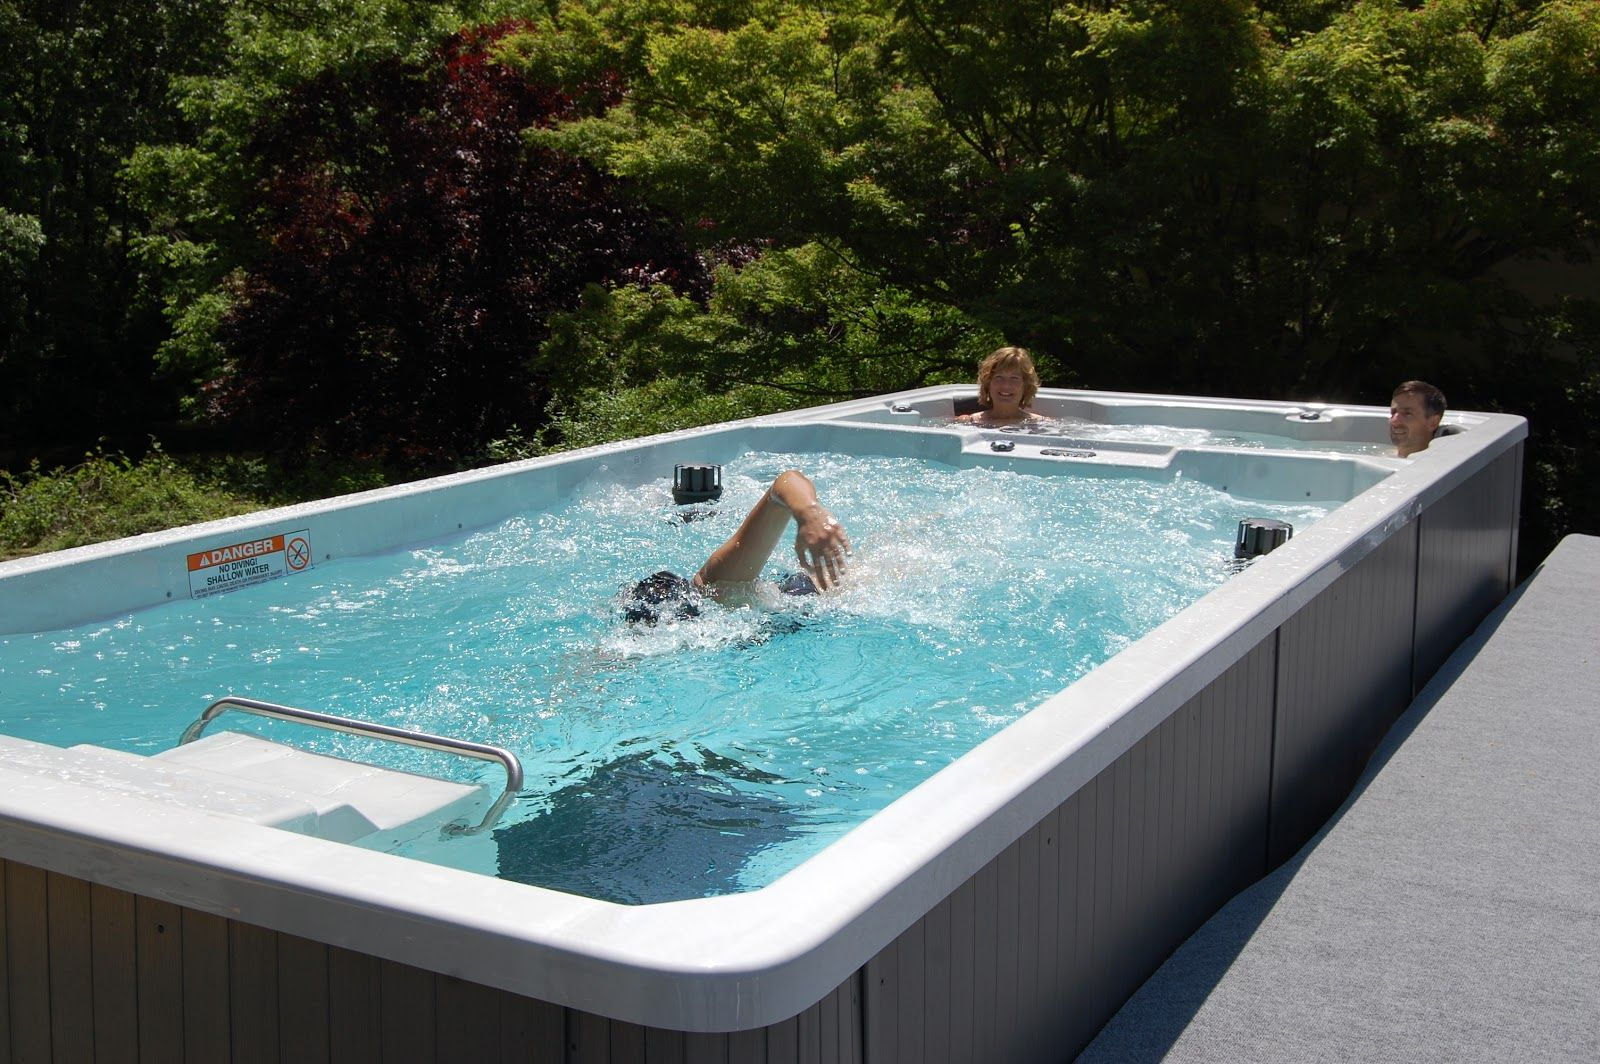 Delightful Swim Spa Images | The Endless Pool Swim Spa Offers Dual Use Flexibility  Hydrotherapy Spa .